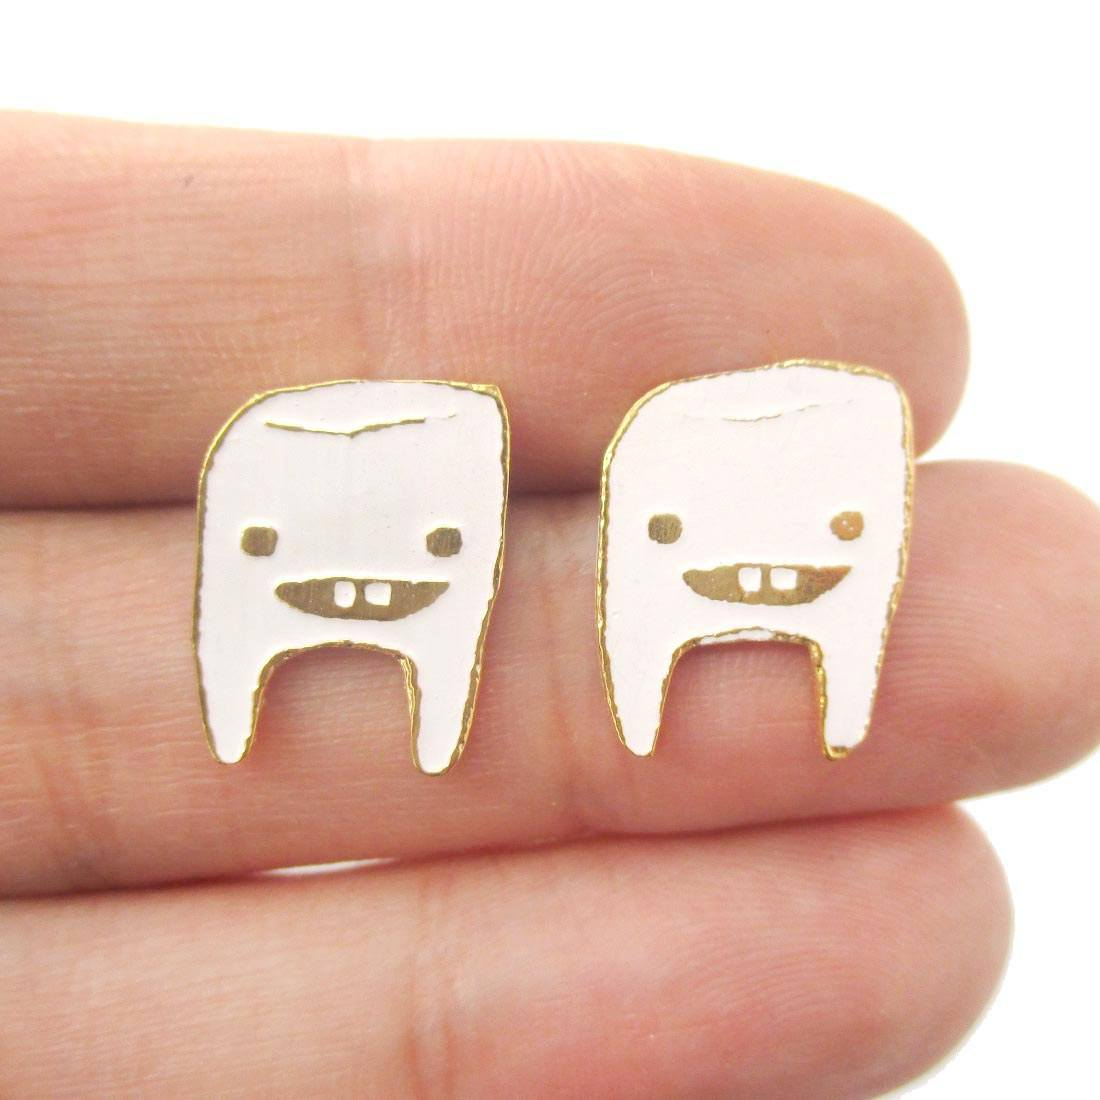 Adorable Wisdom Tooth Smiley Face Shaped Stud Earrings in White